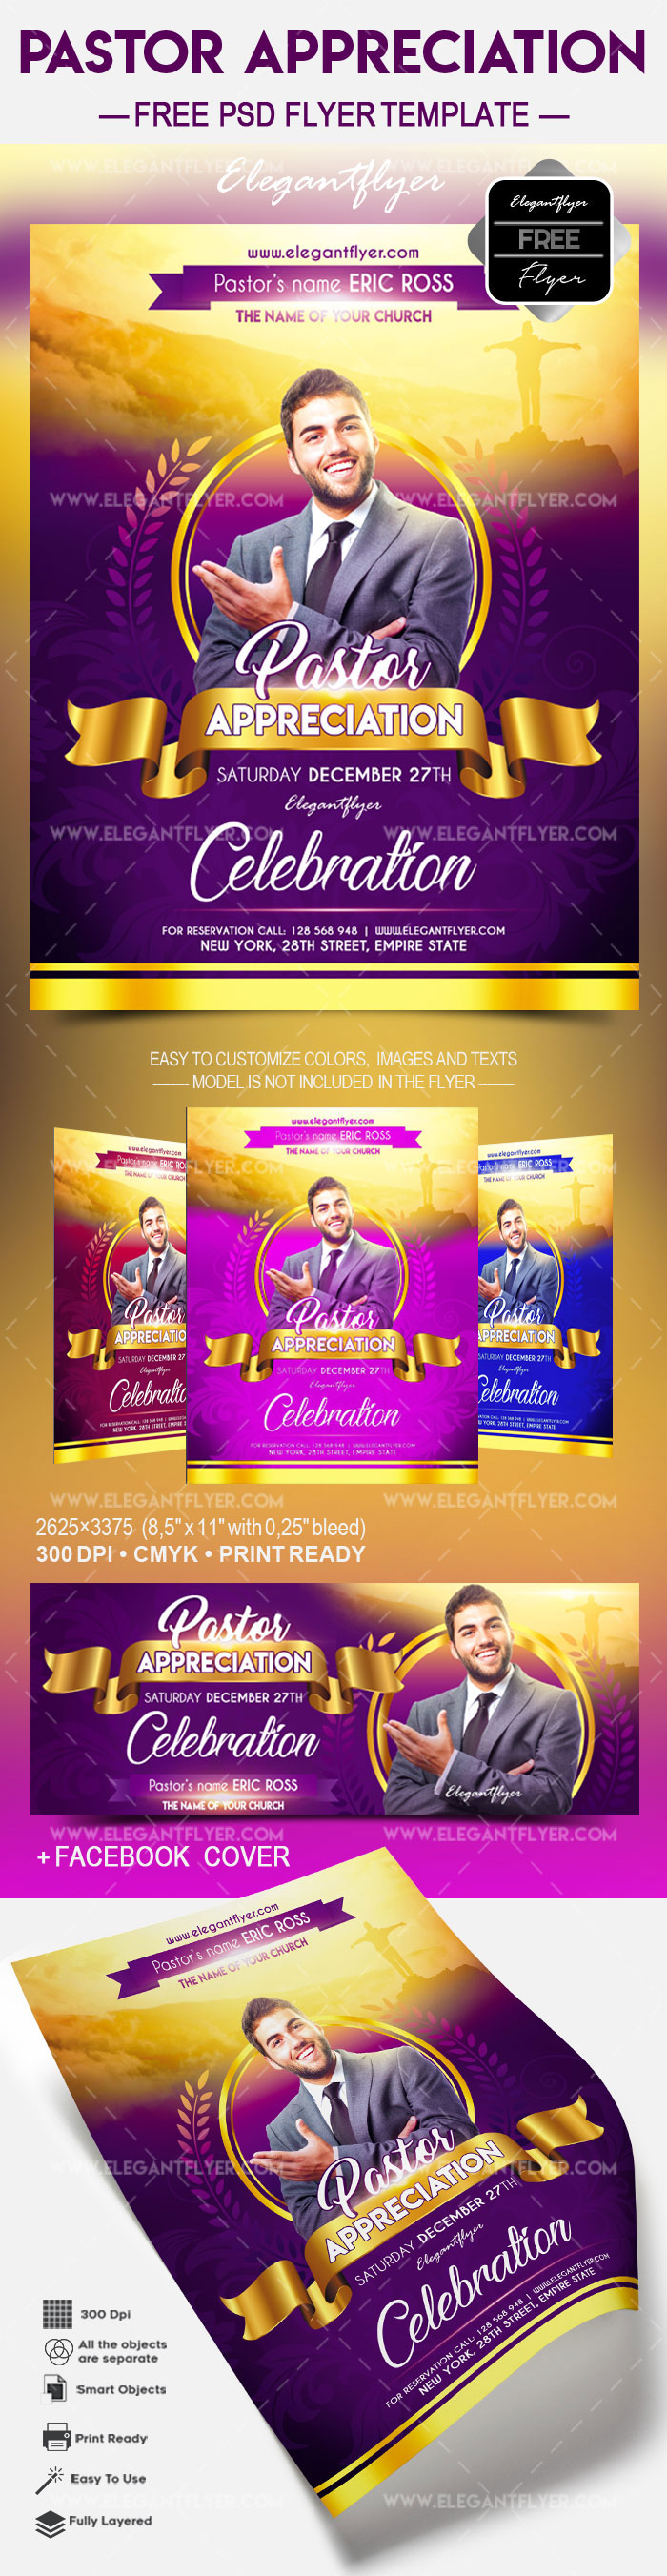 Free Pastor Appreciation – Flyer PSD Template